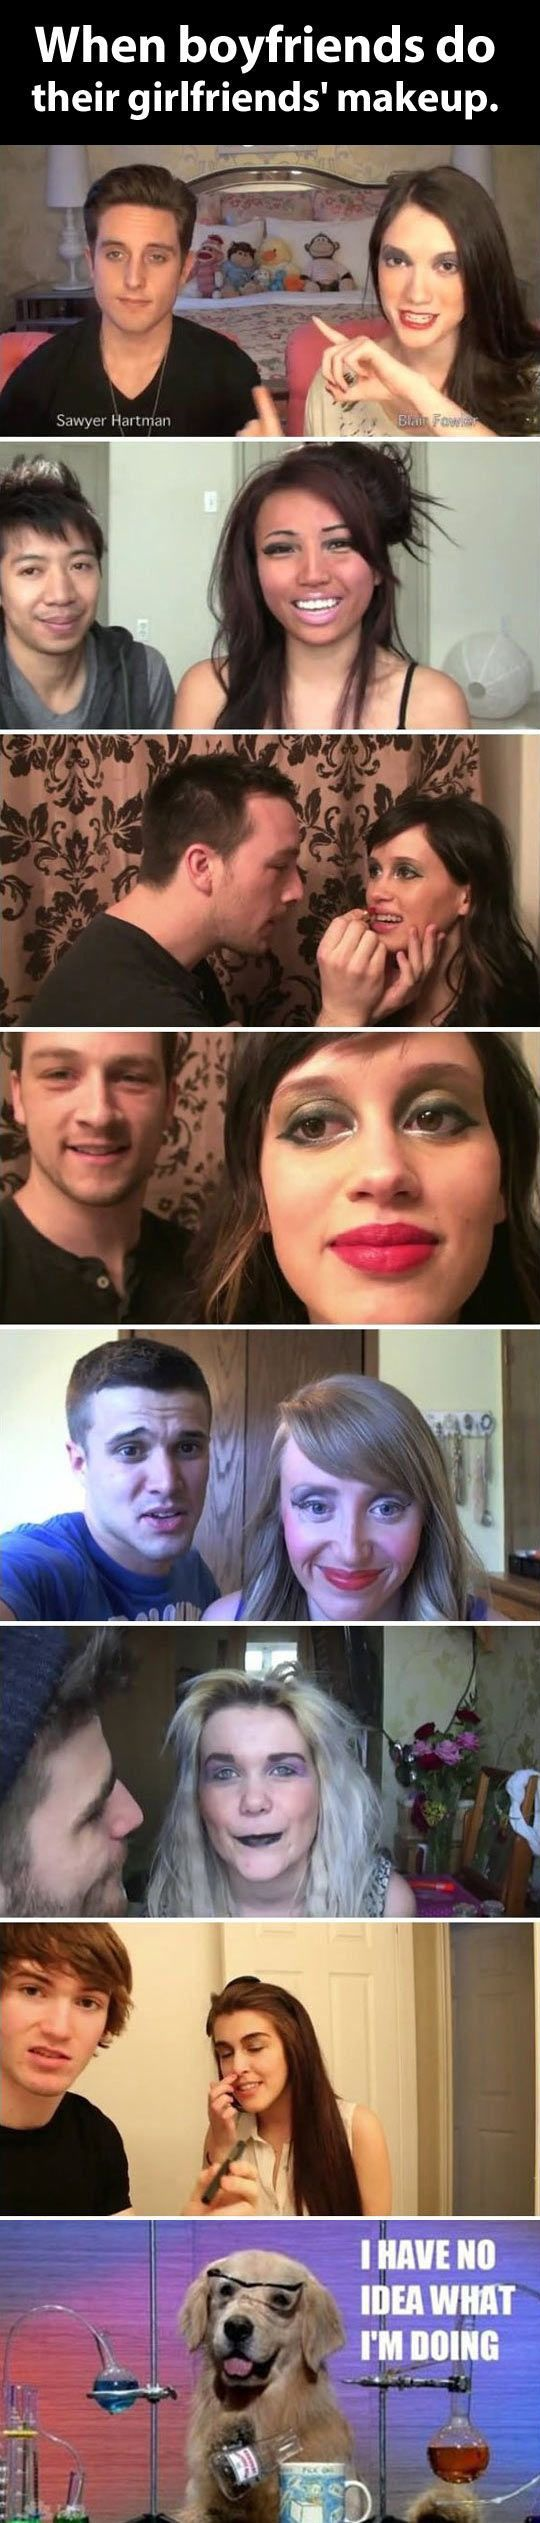 Boyfriends Don't Do Make-Up // funny pictures - funny photos - funny images - funny pics - funny quotes - #lol #humor #funnypictures